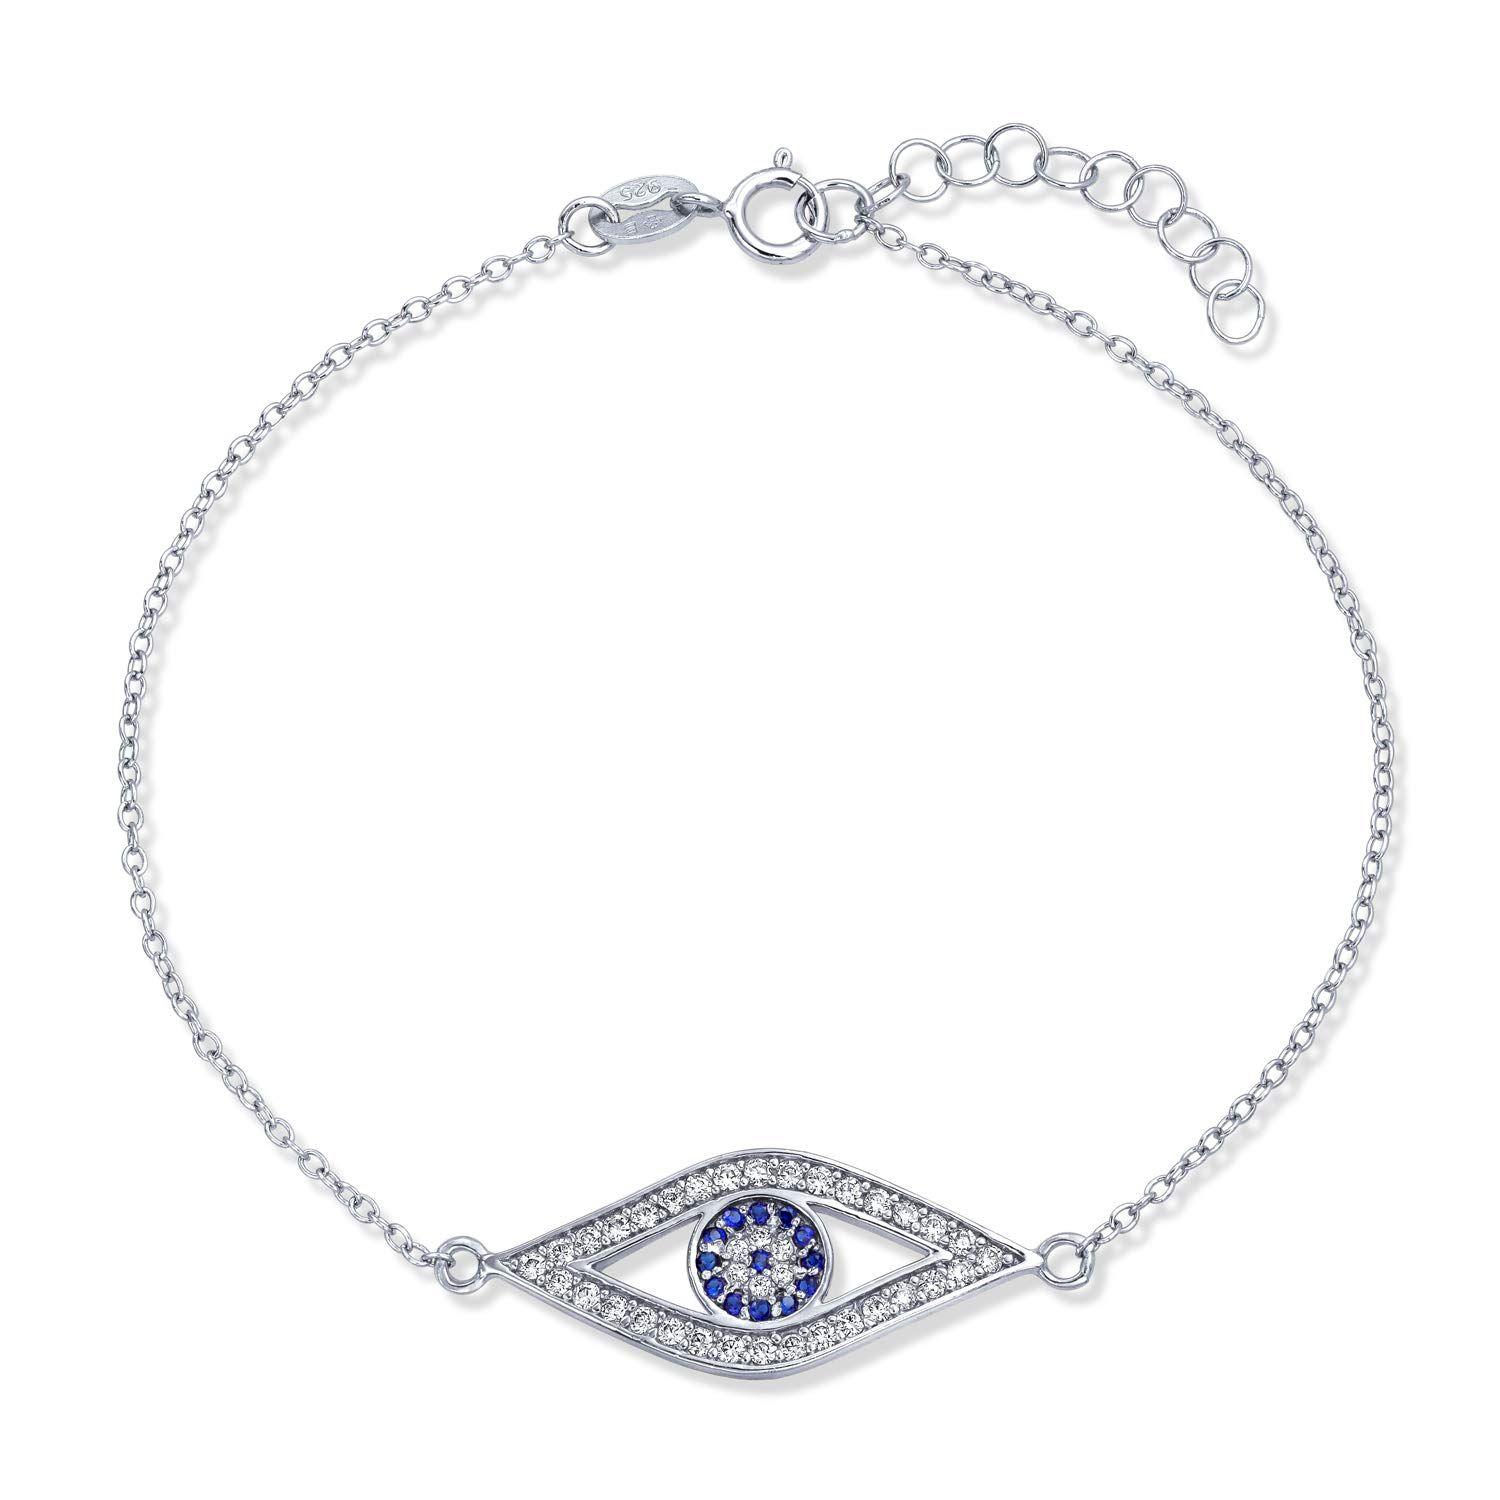 Evil Eye Charm Link Bracelet Simulated Sapphire Clear CZ Filigree Sterling Silver 7 to 8 inch with Extender Bling Jewelry BS-EVLC-S